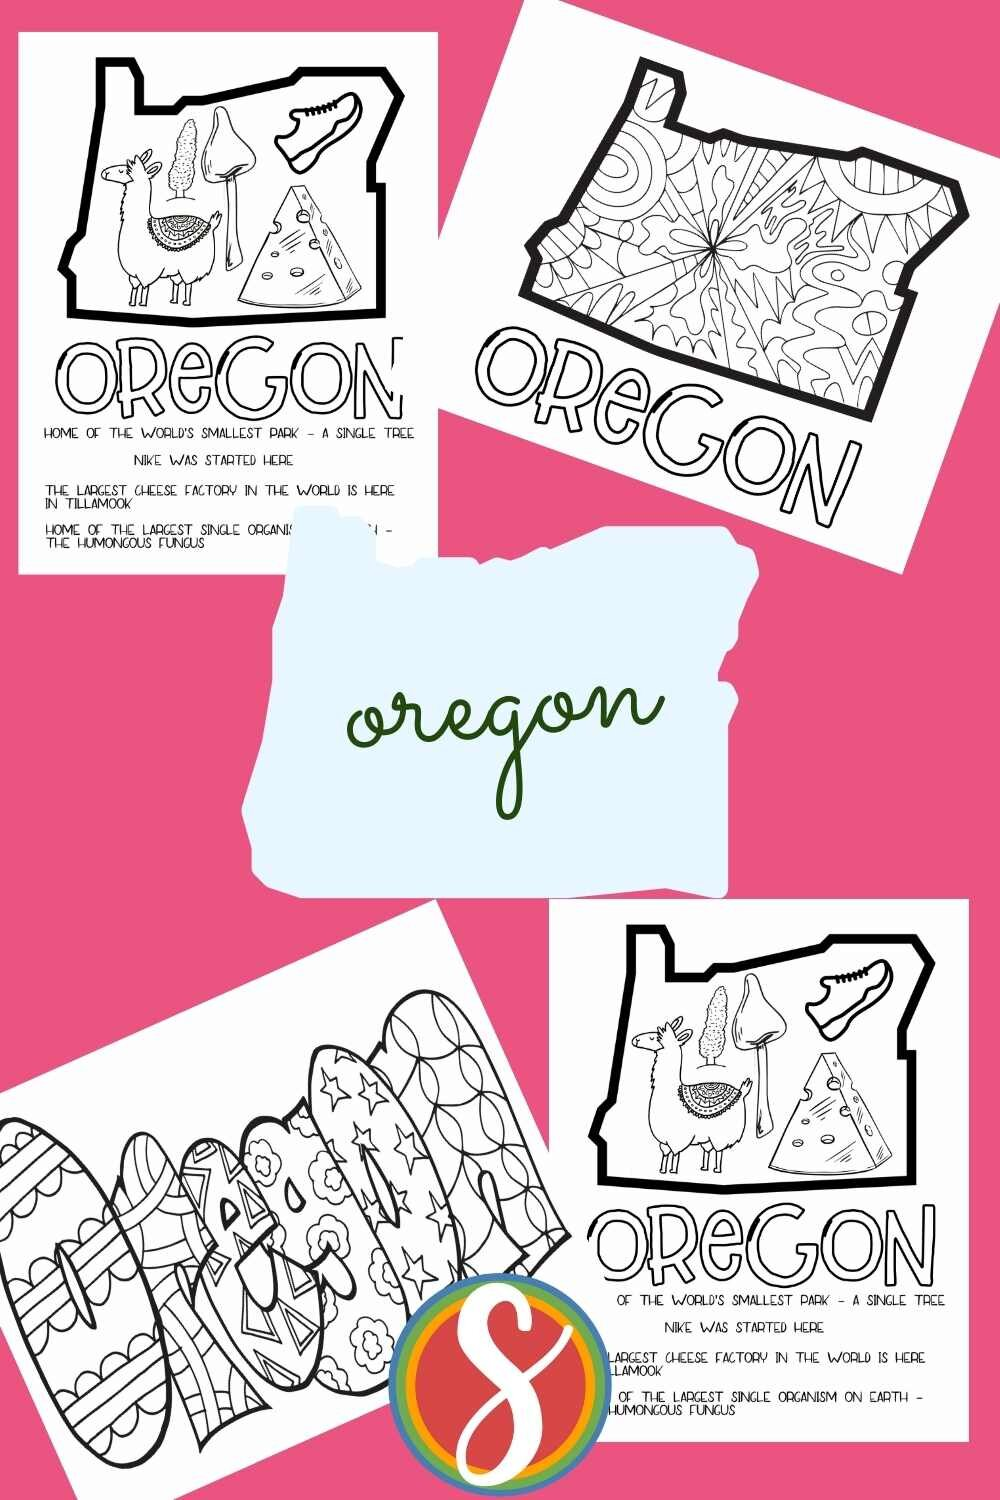 Elementary printable activities - free geography pages to print and color from Stevie Doodles